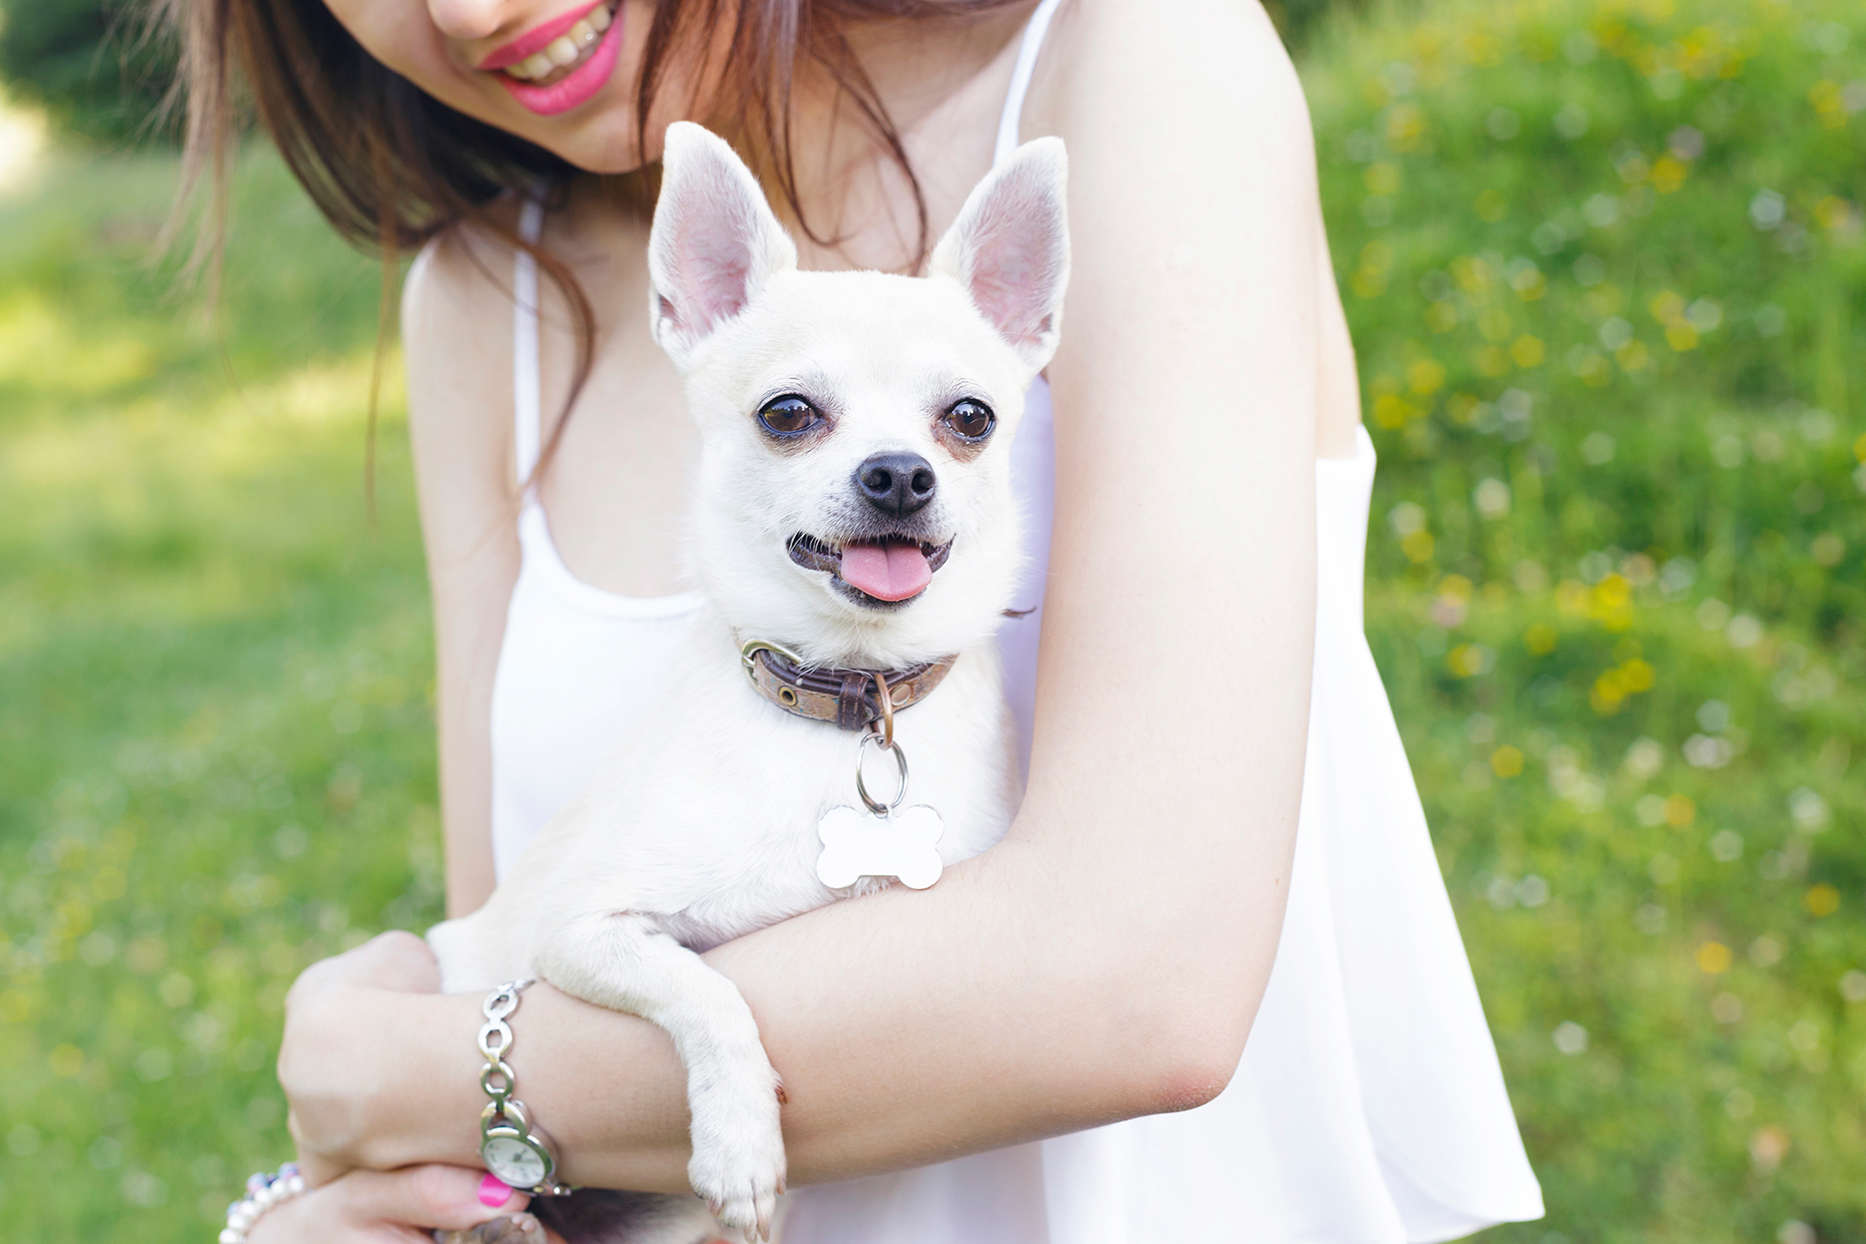 Latin girl with her lovely dog, a white chihuahua, outdoors, in a park, on a green meadow.